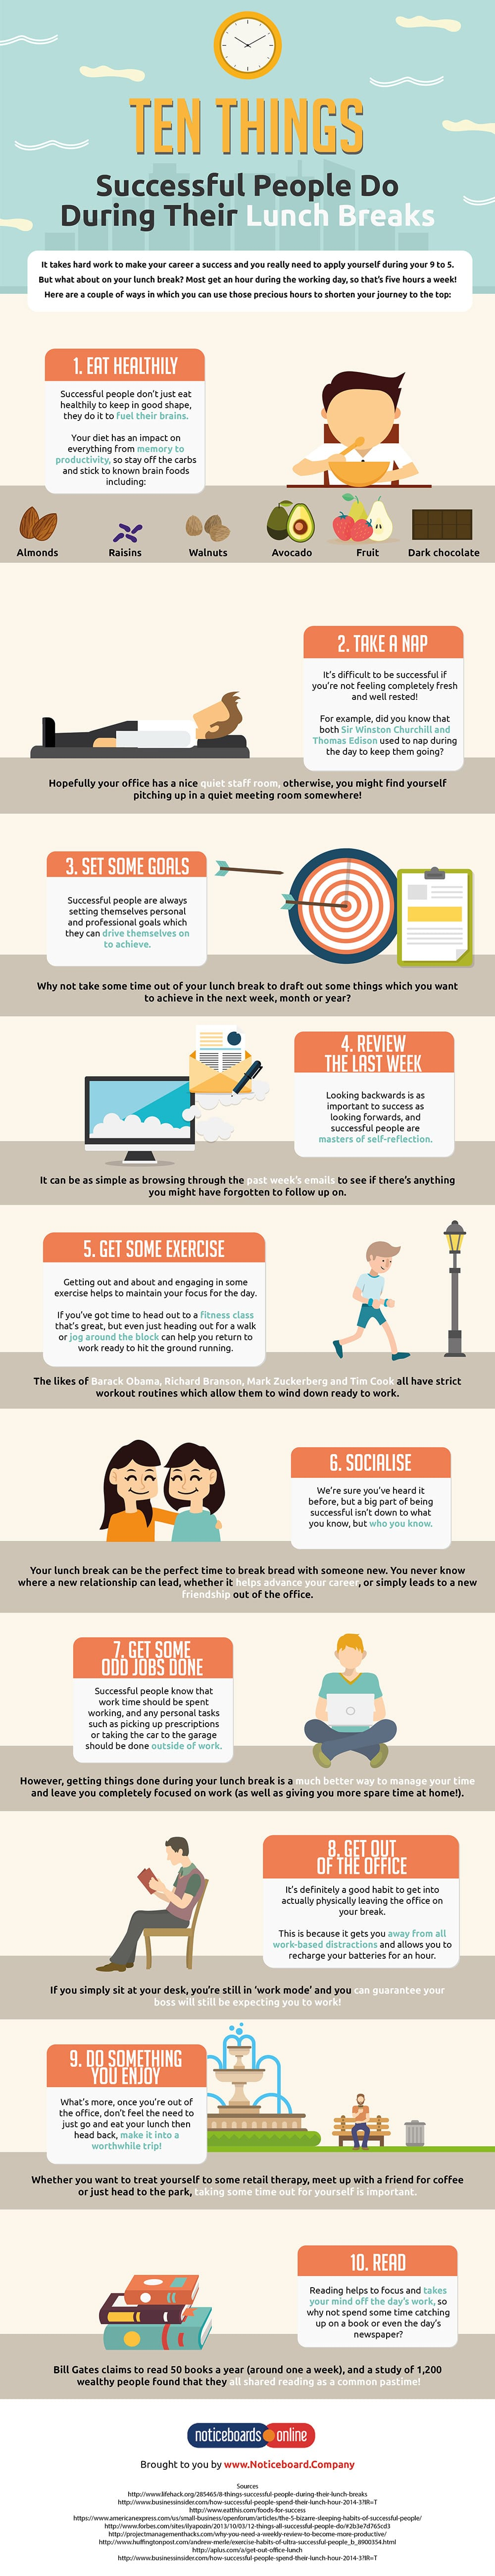 Ten Things Successful People Do During Their Lunch Breaks